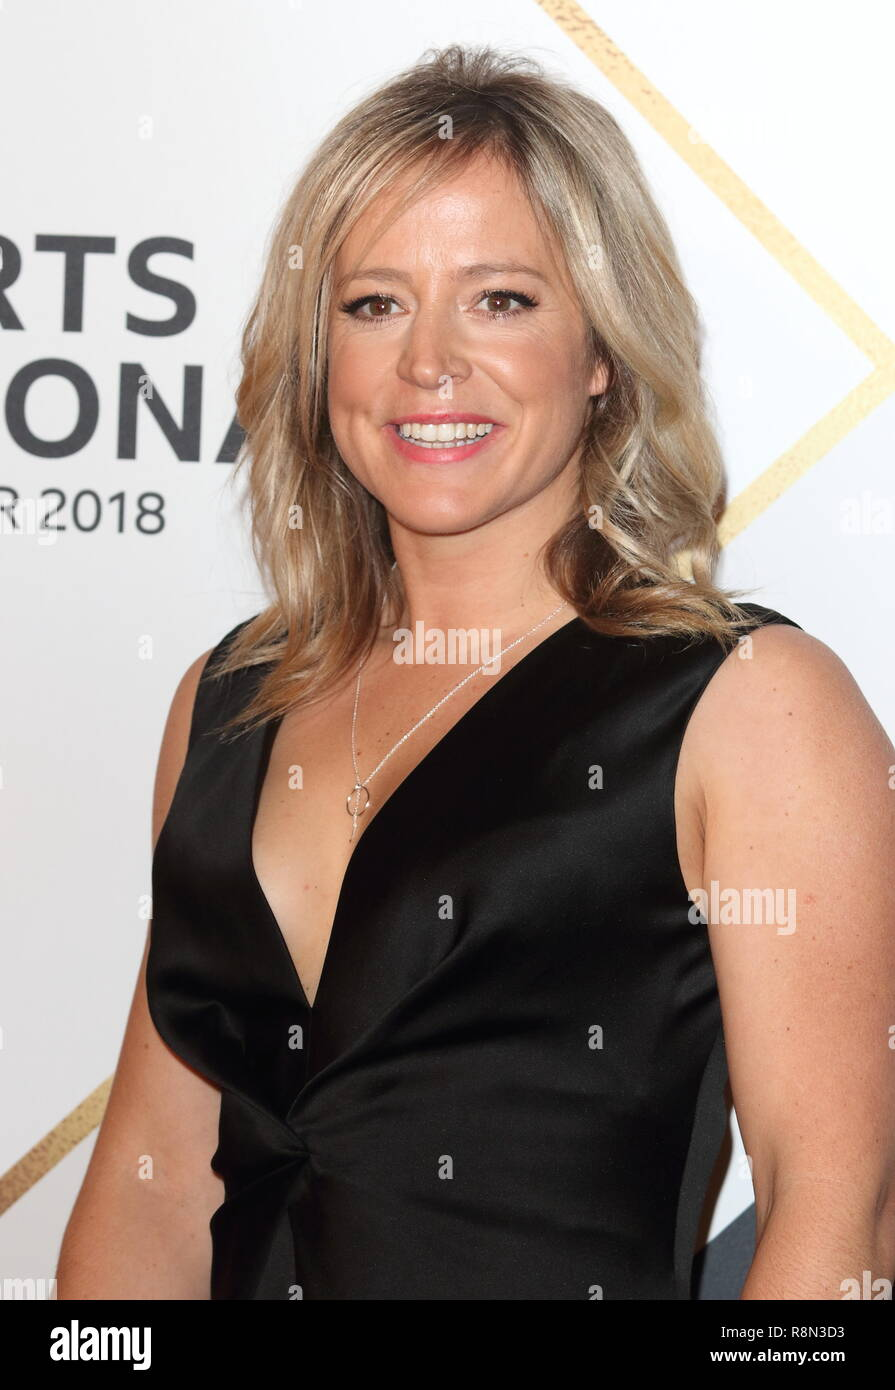 Birmingham, UK. 16th Dec, 2018. Jenny Jones on the red carpet at the BBC Sports Personality Of The Year 2018 at the Resorts World Arena. Credit: Keith Mayhew/SOPA Images/ZUMA Wire/Alamy Live News - Stock Image